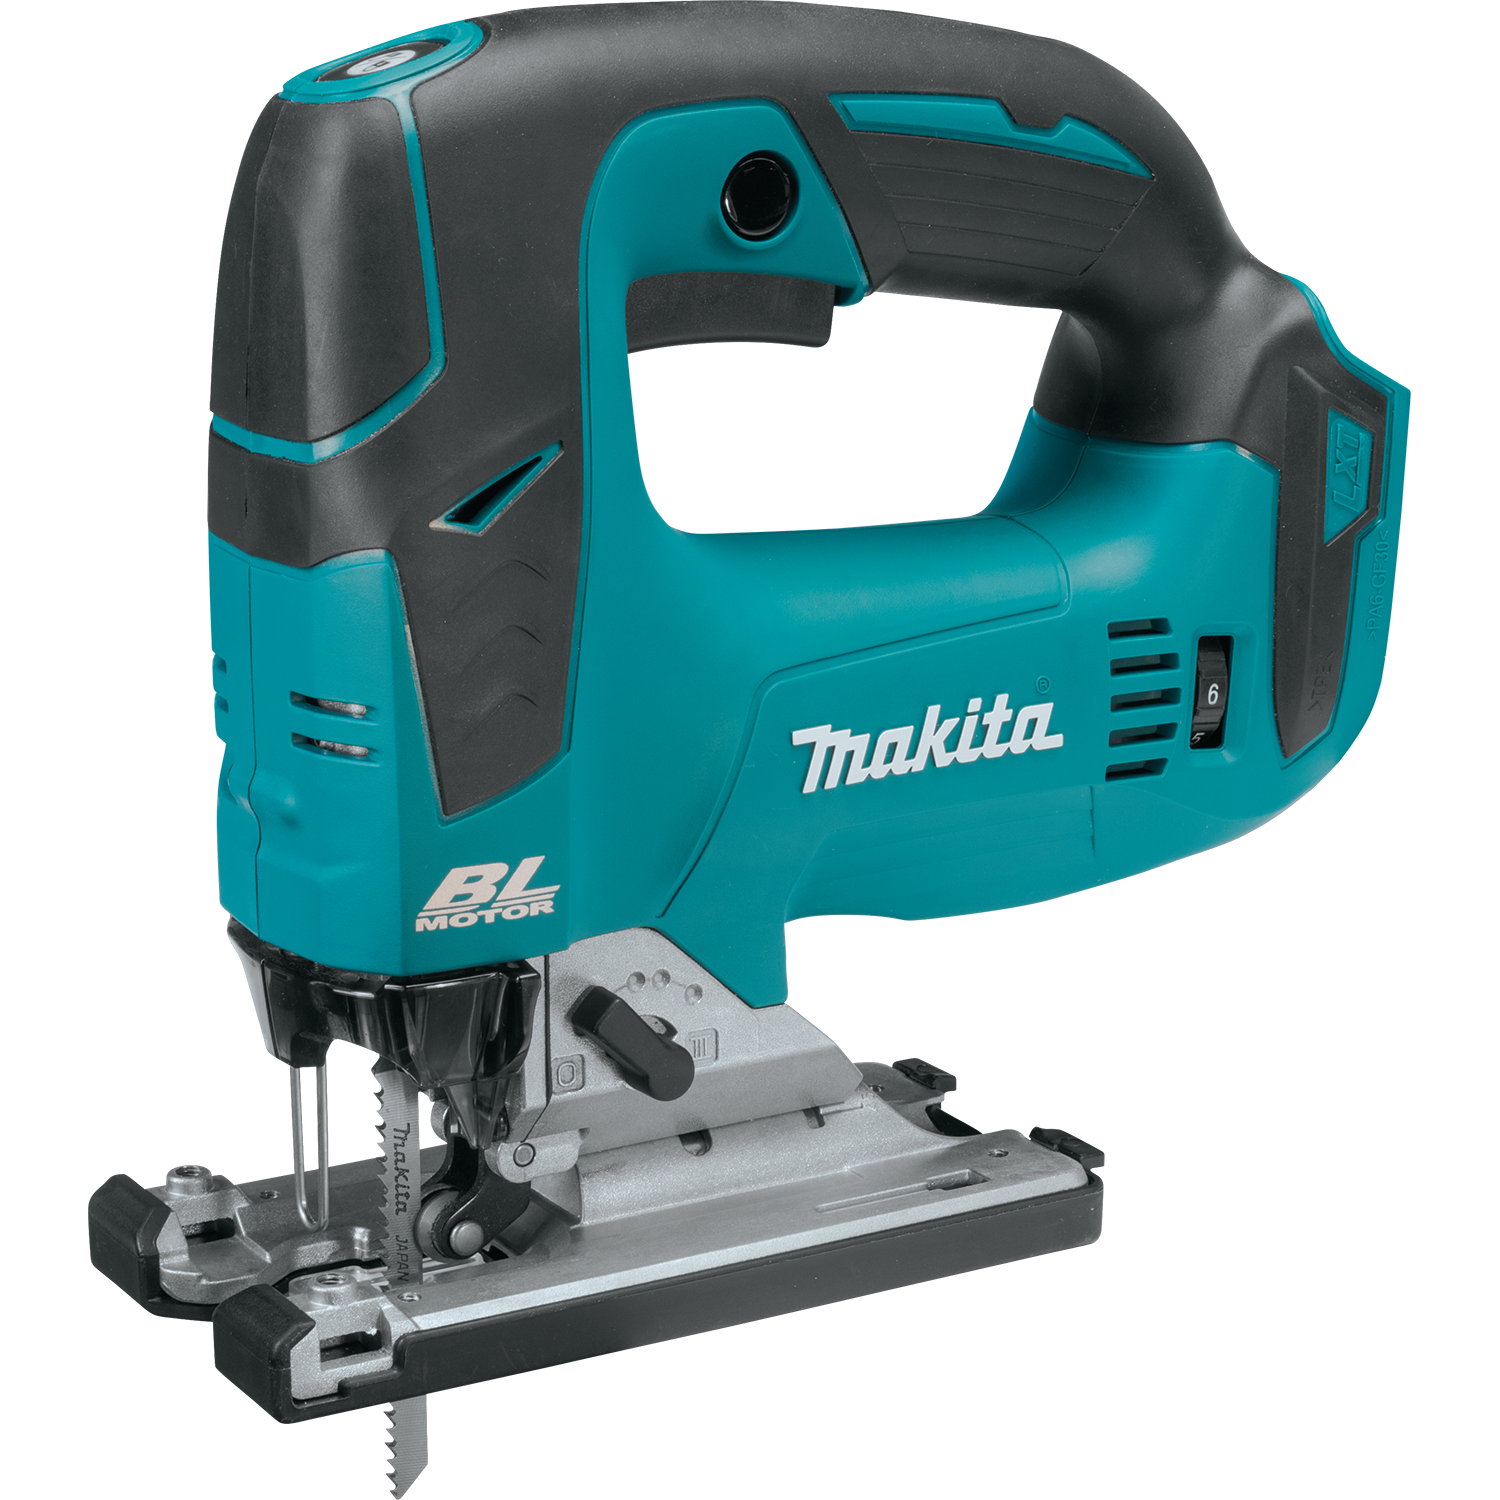 Makita usa product details xvj02z xvj02z greentooth Images